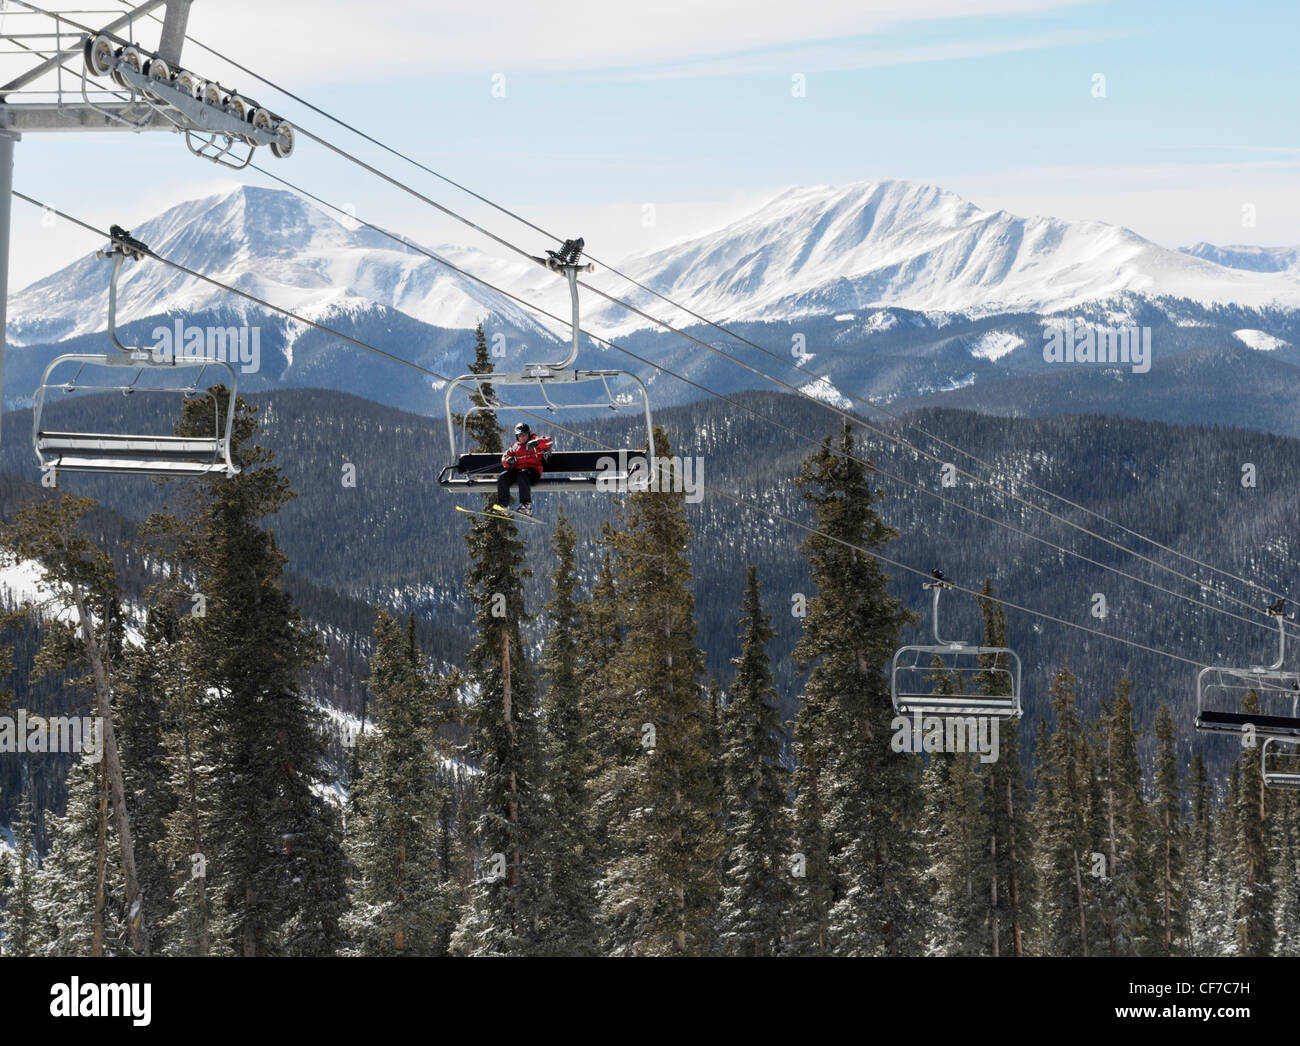 Chairlift bringing lone skier to the summit, Keystone Resort, Colorado - Stock Image